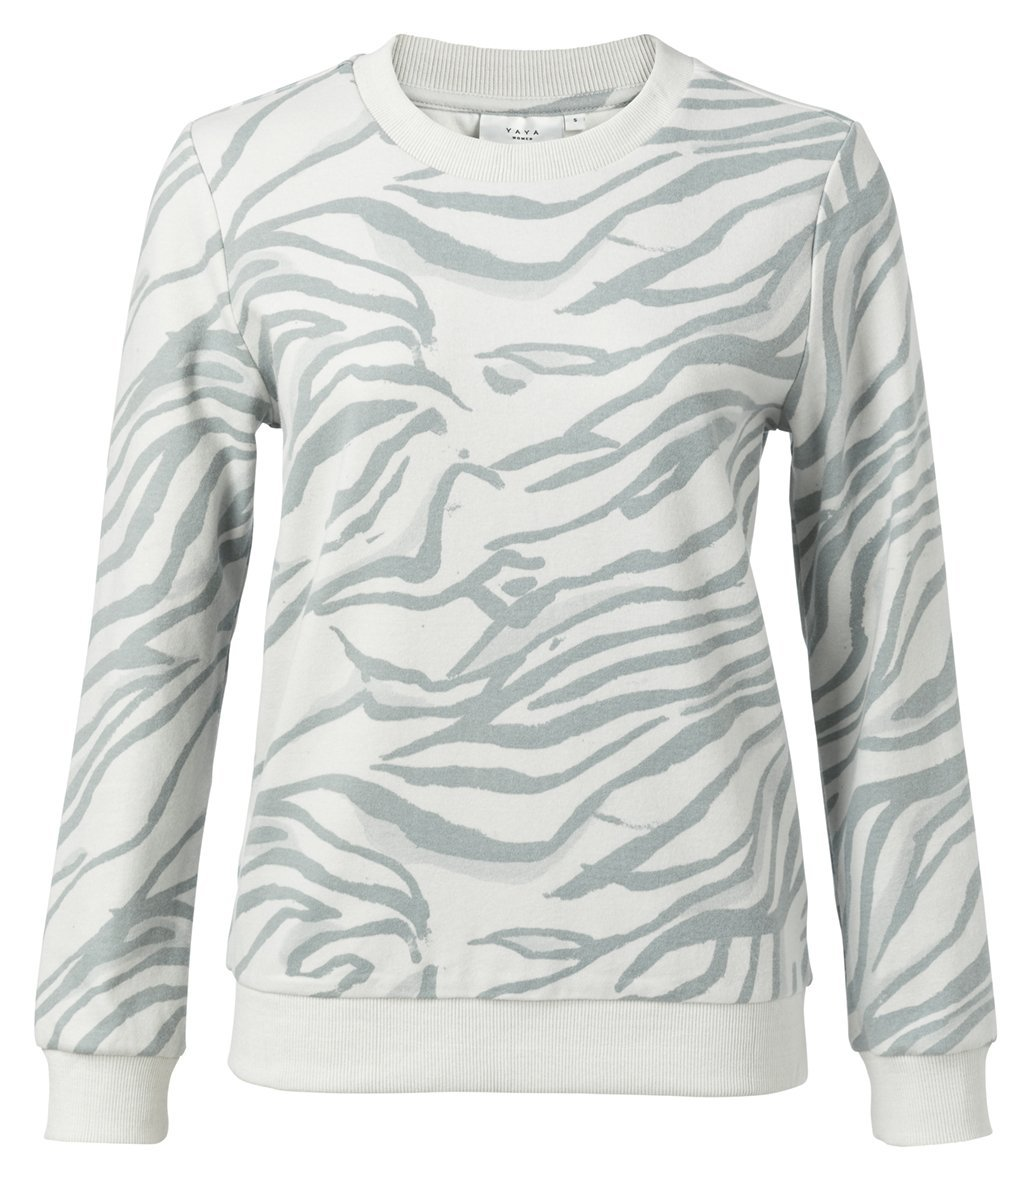 Cotton Blend Sweatshirt With Animal Print Seagull Grey Dessin - BouChic